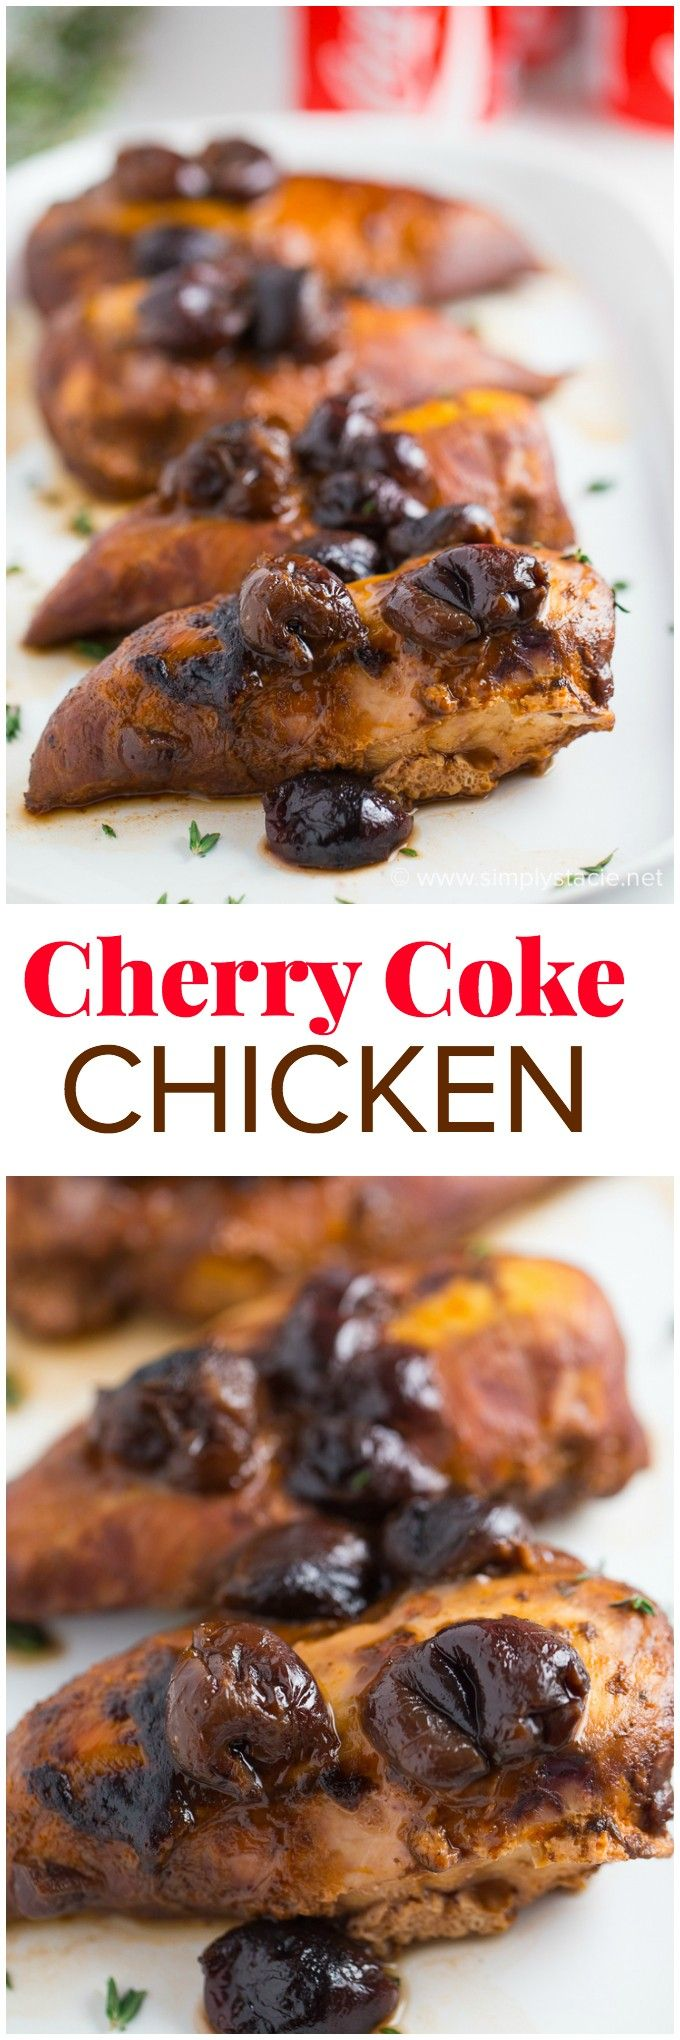 Cherry Coke Chicken - Only four ingredients in this simple slow cooker recipe that will knock your socks off!